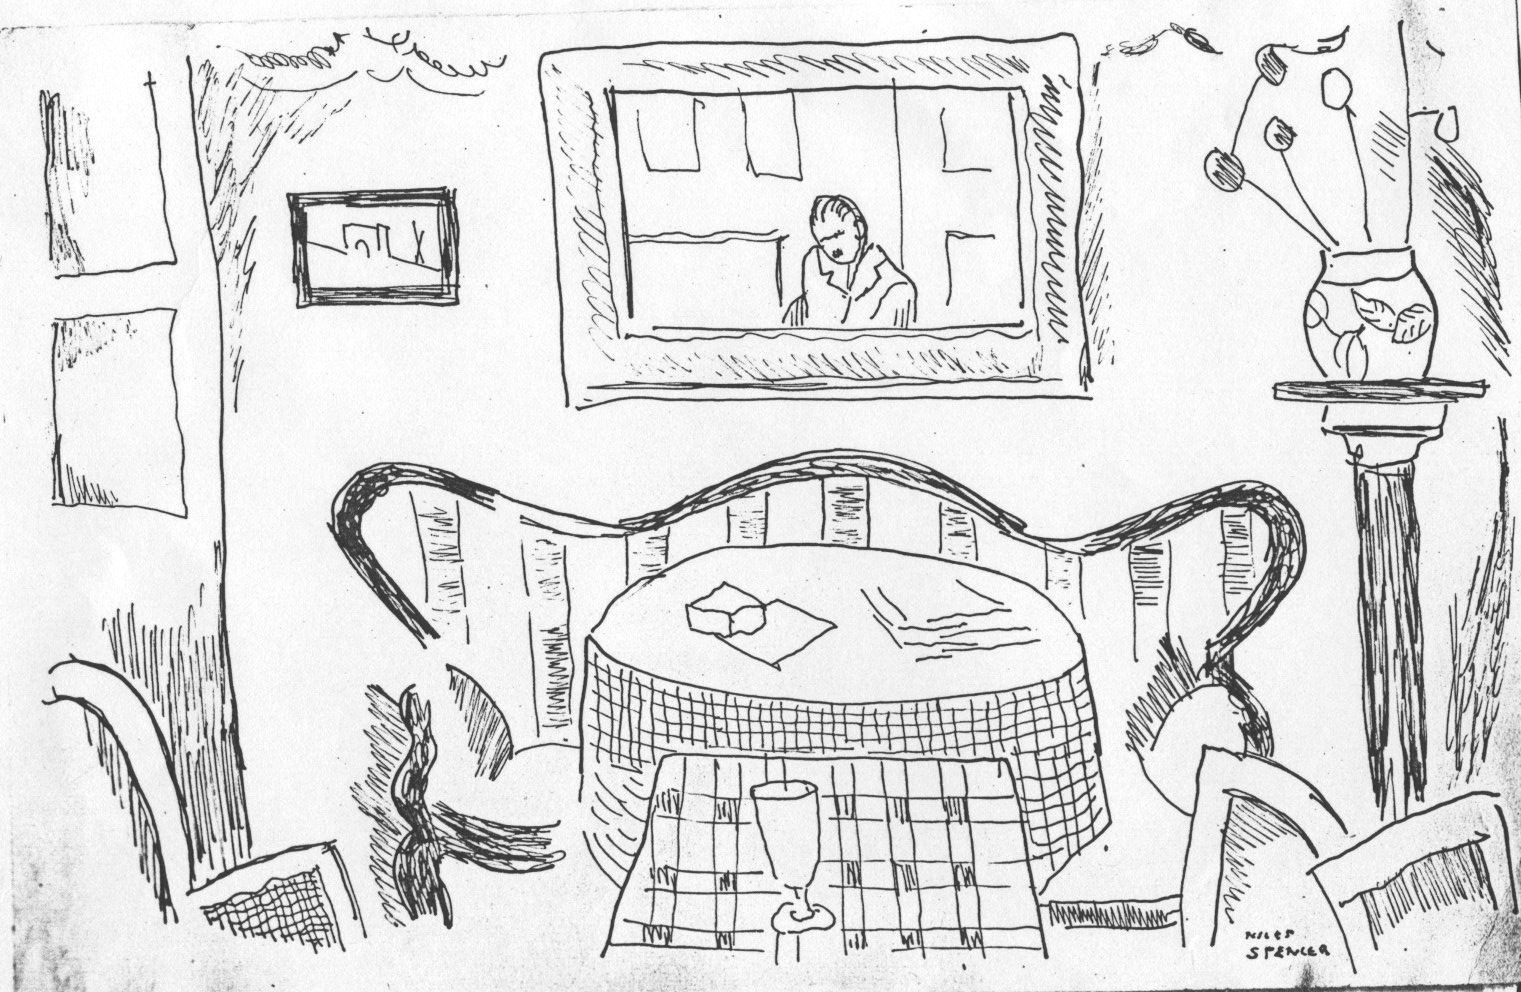 Ink drawing of room with couch, round table, square table, glass, vase, chairs, and mirror with reflection of the artist